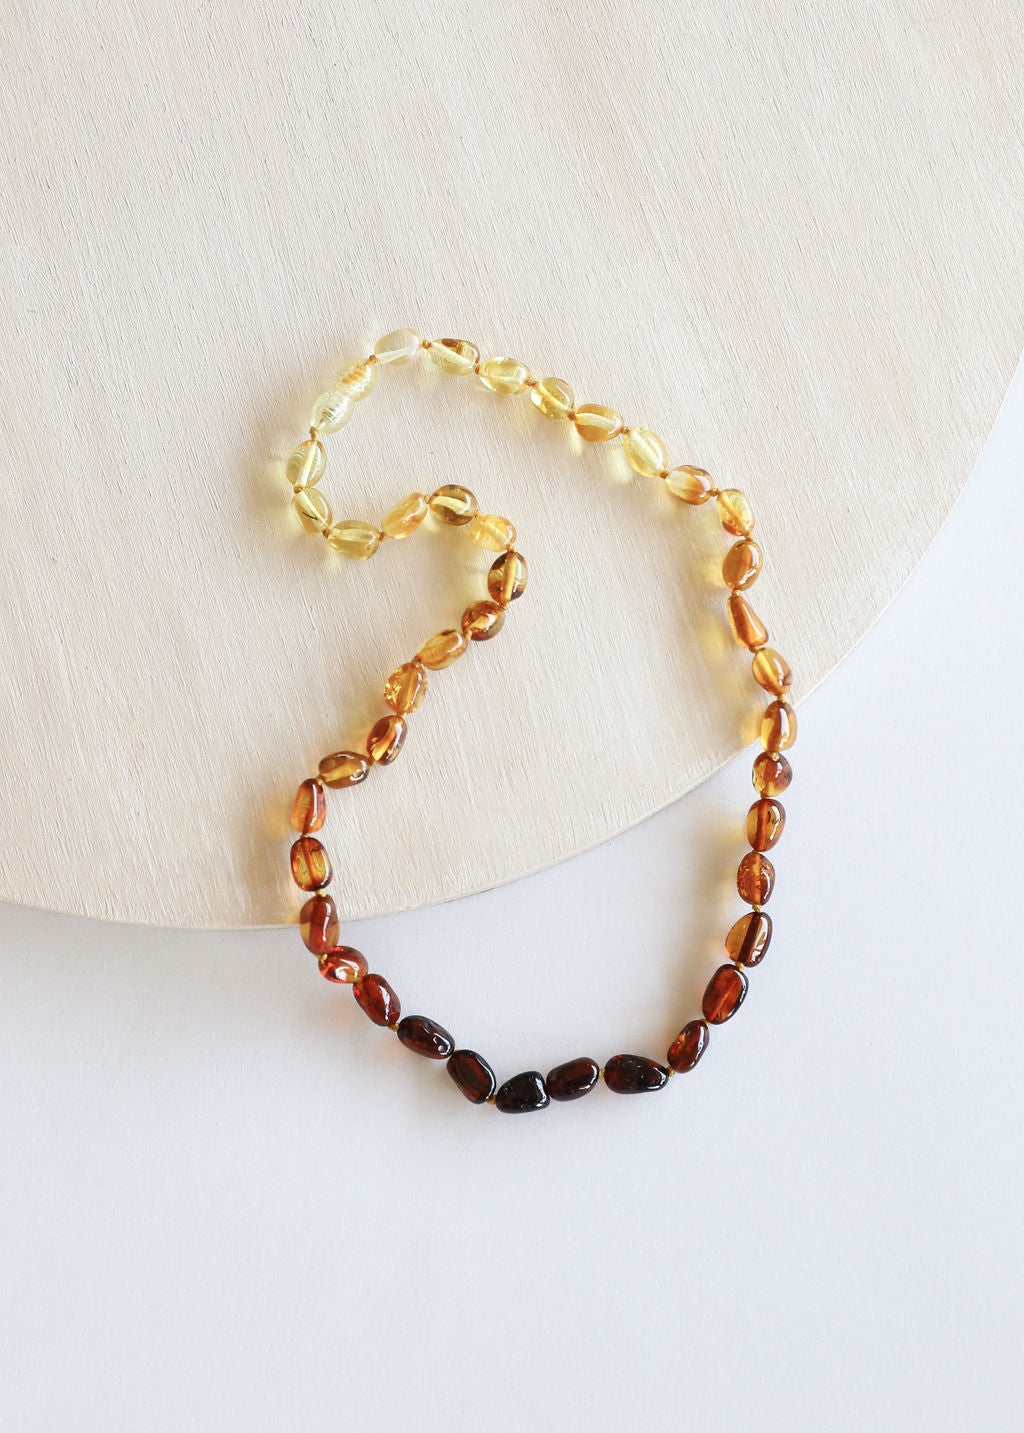 Polished Ombre Amber Necklace